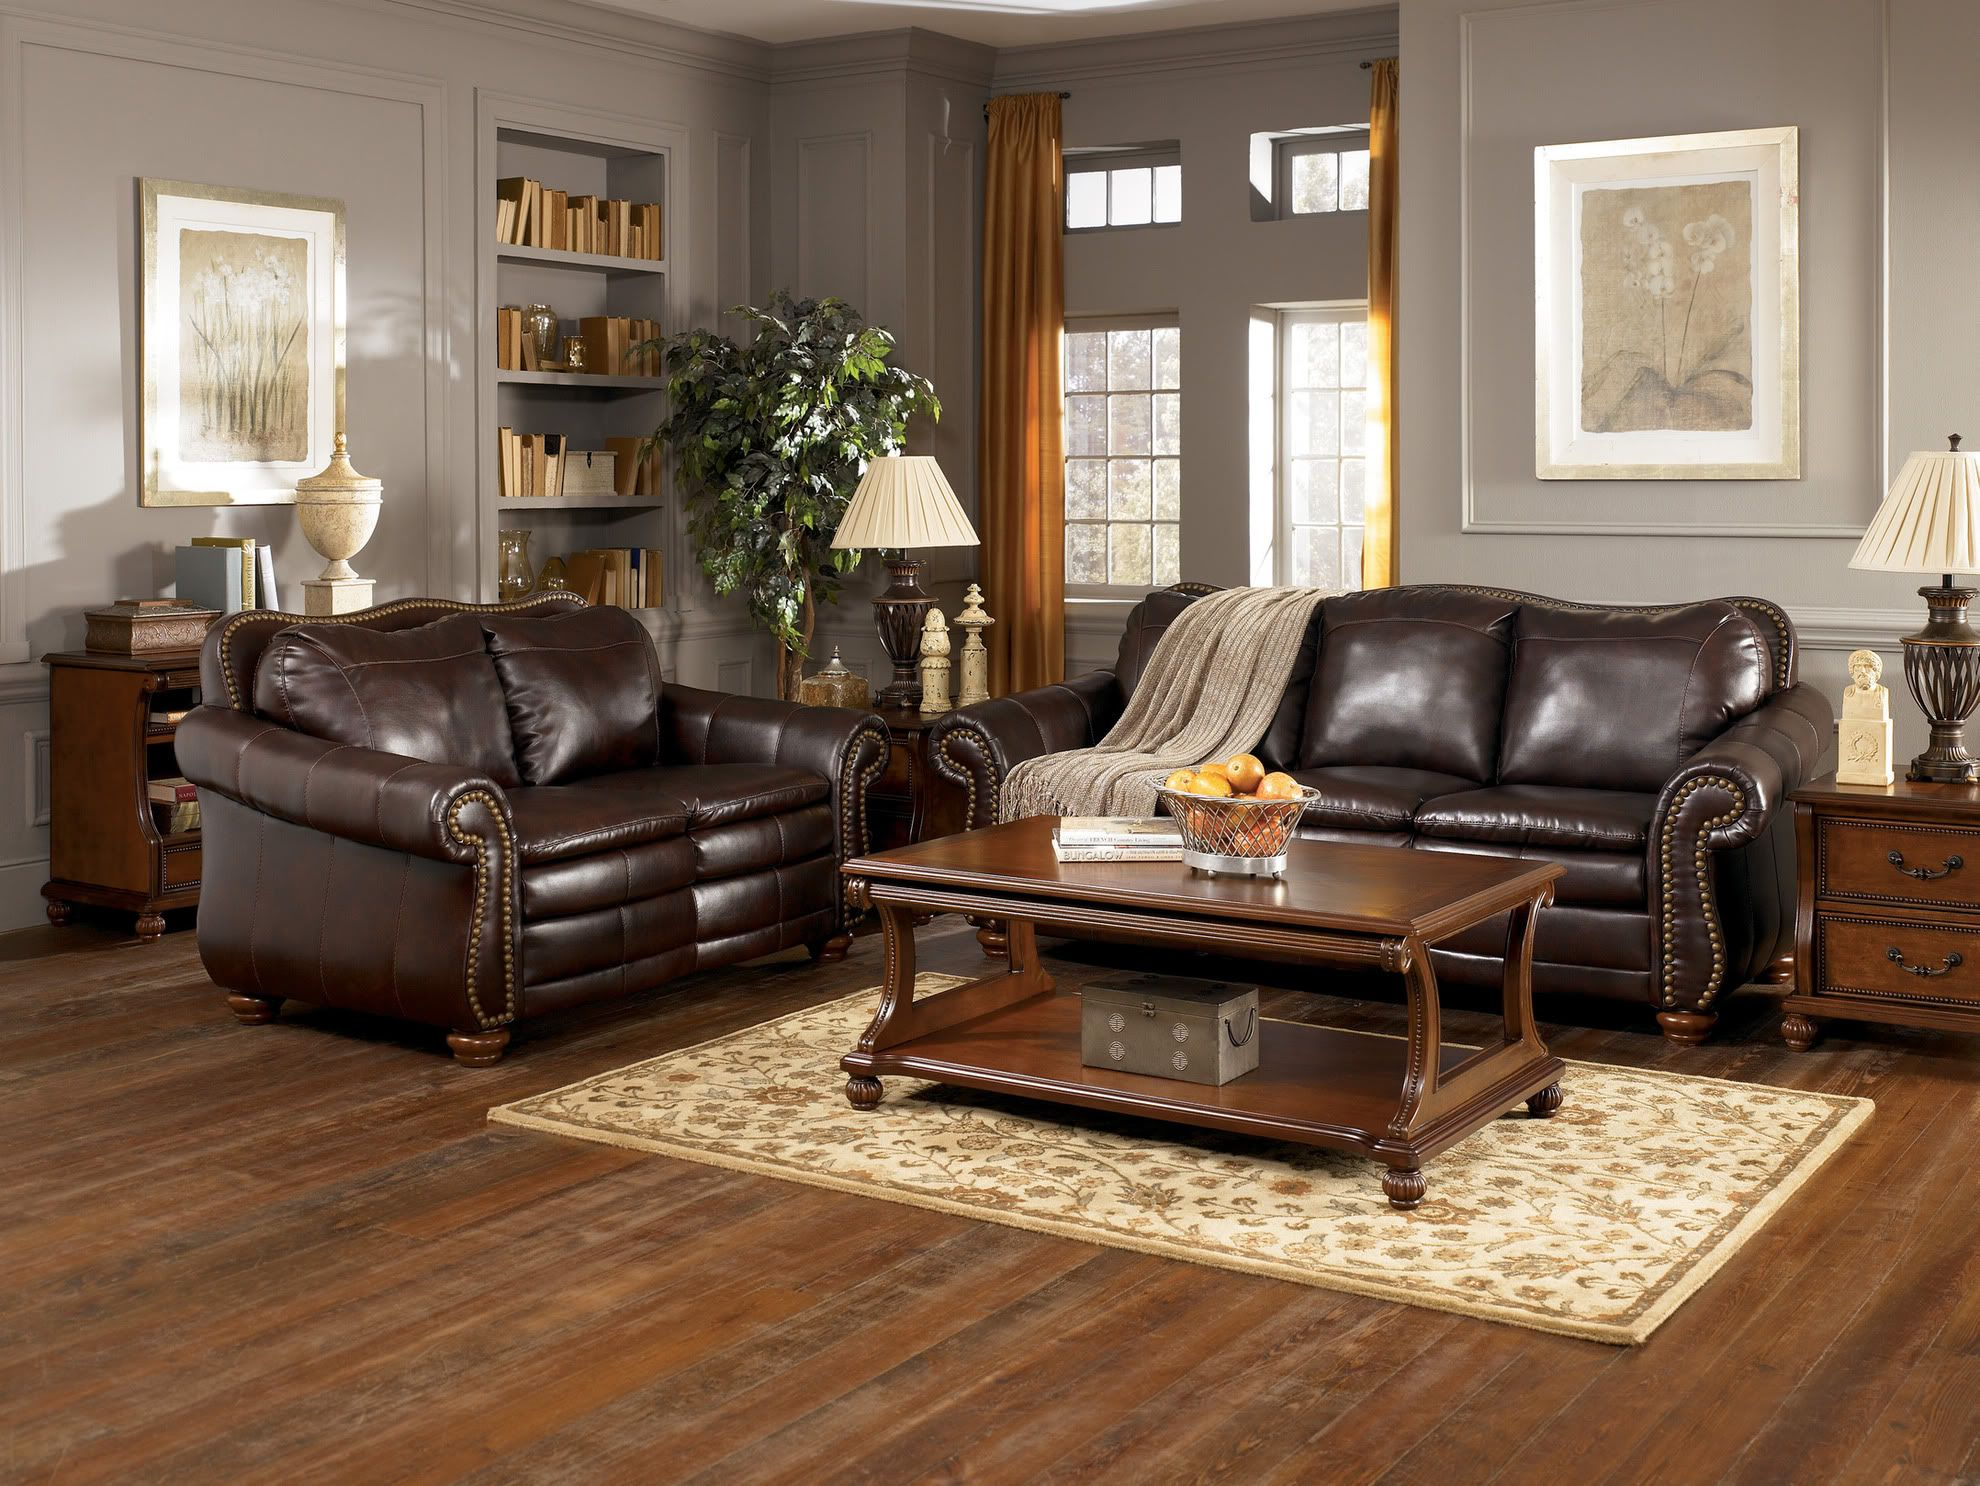 Fetching grey living room with brown furniture design - Gray living room walls ...